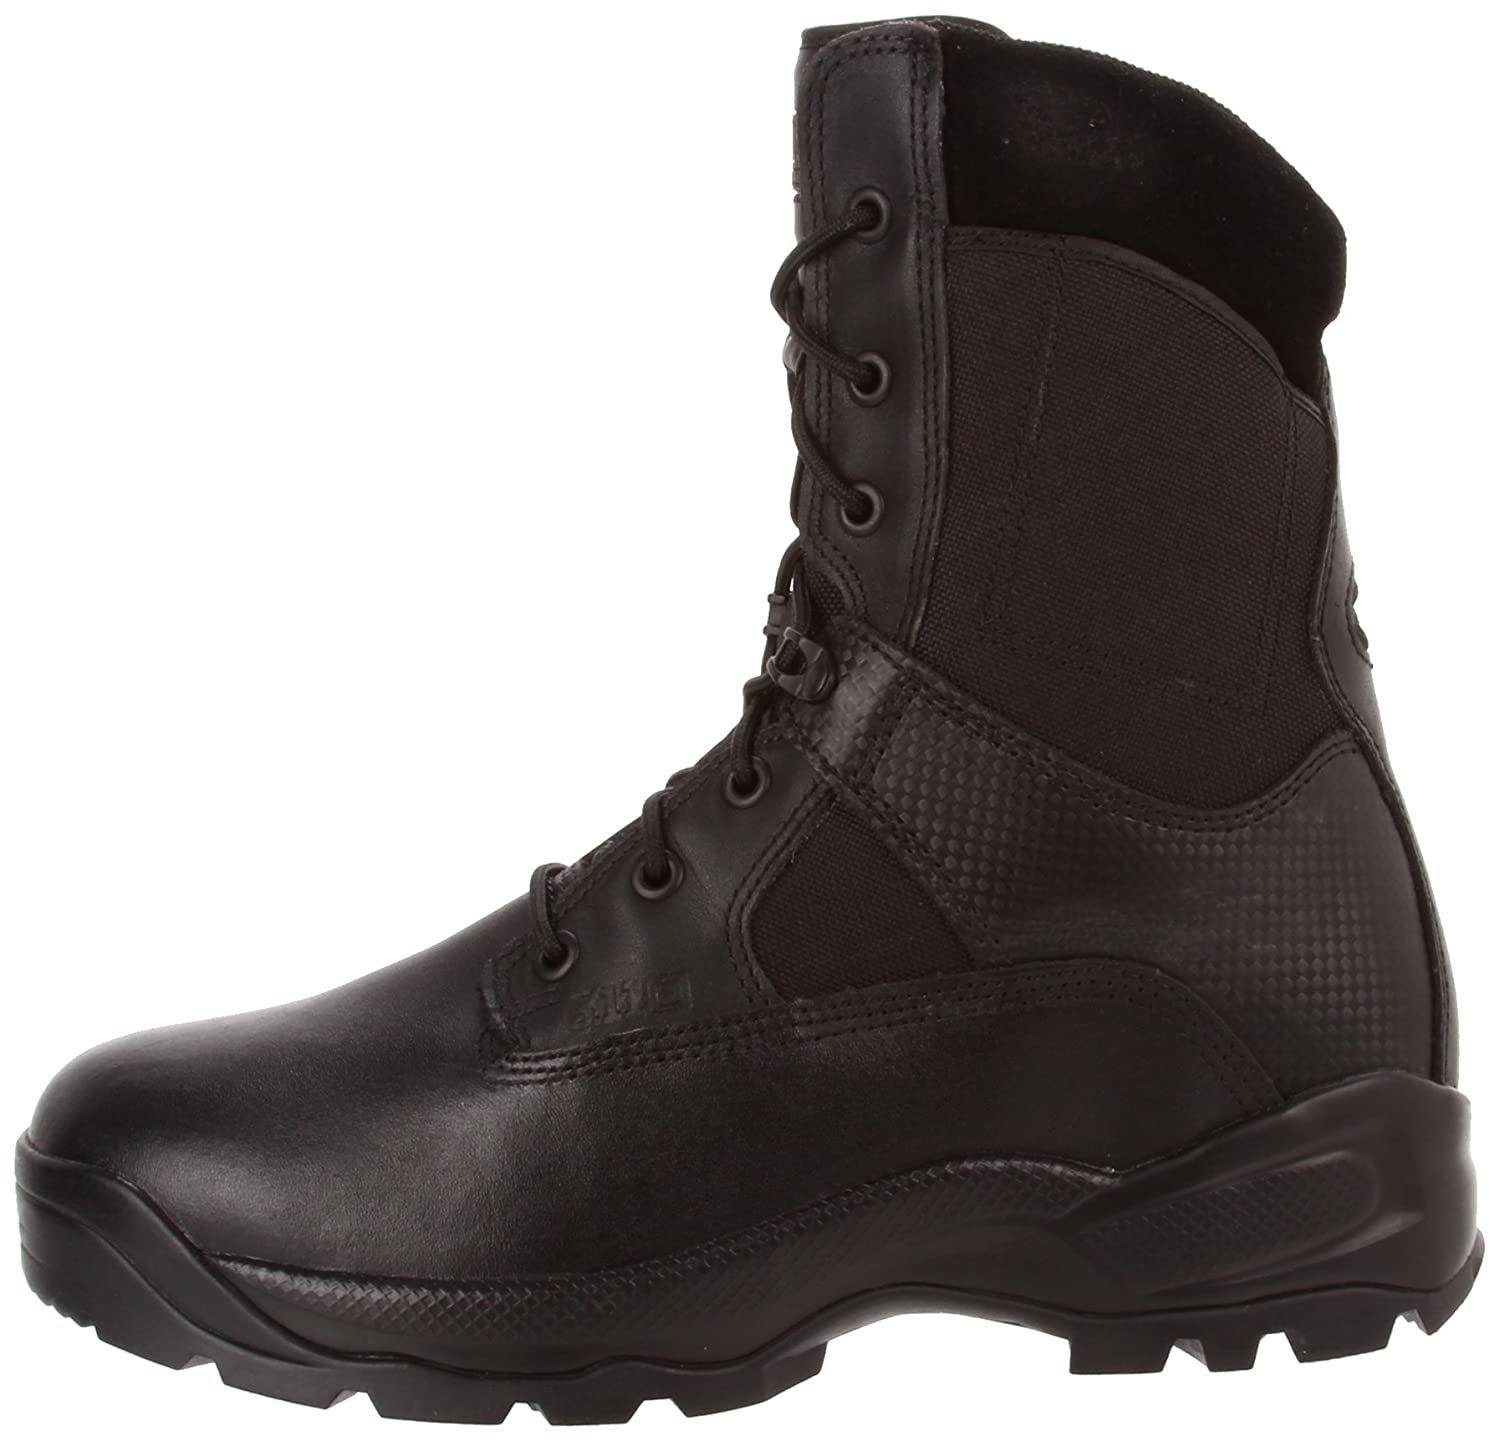 2e96ab8a641 Womens Work & Safety Shoes | Amazon.ca